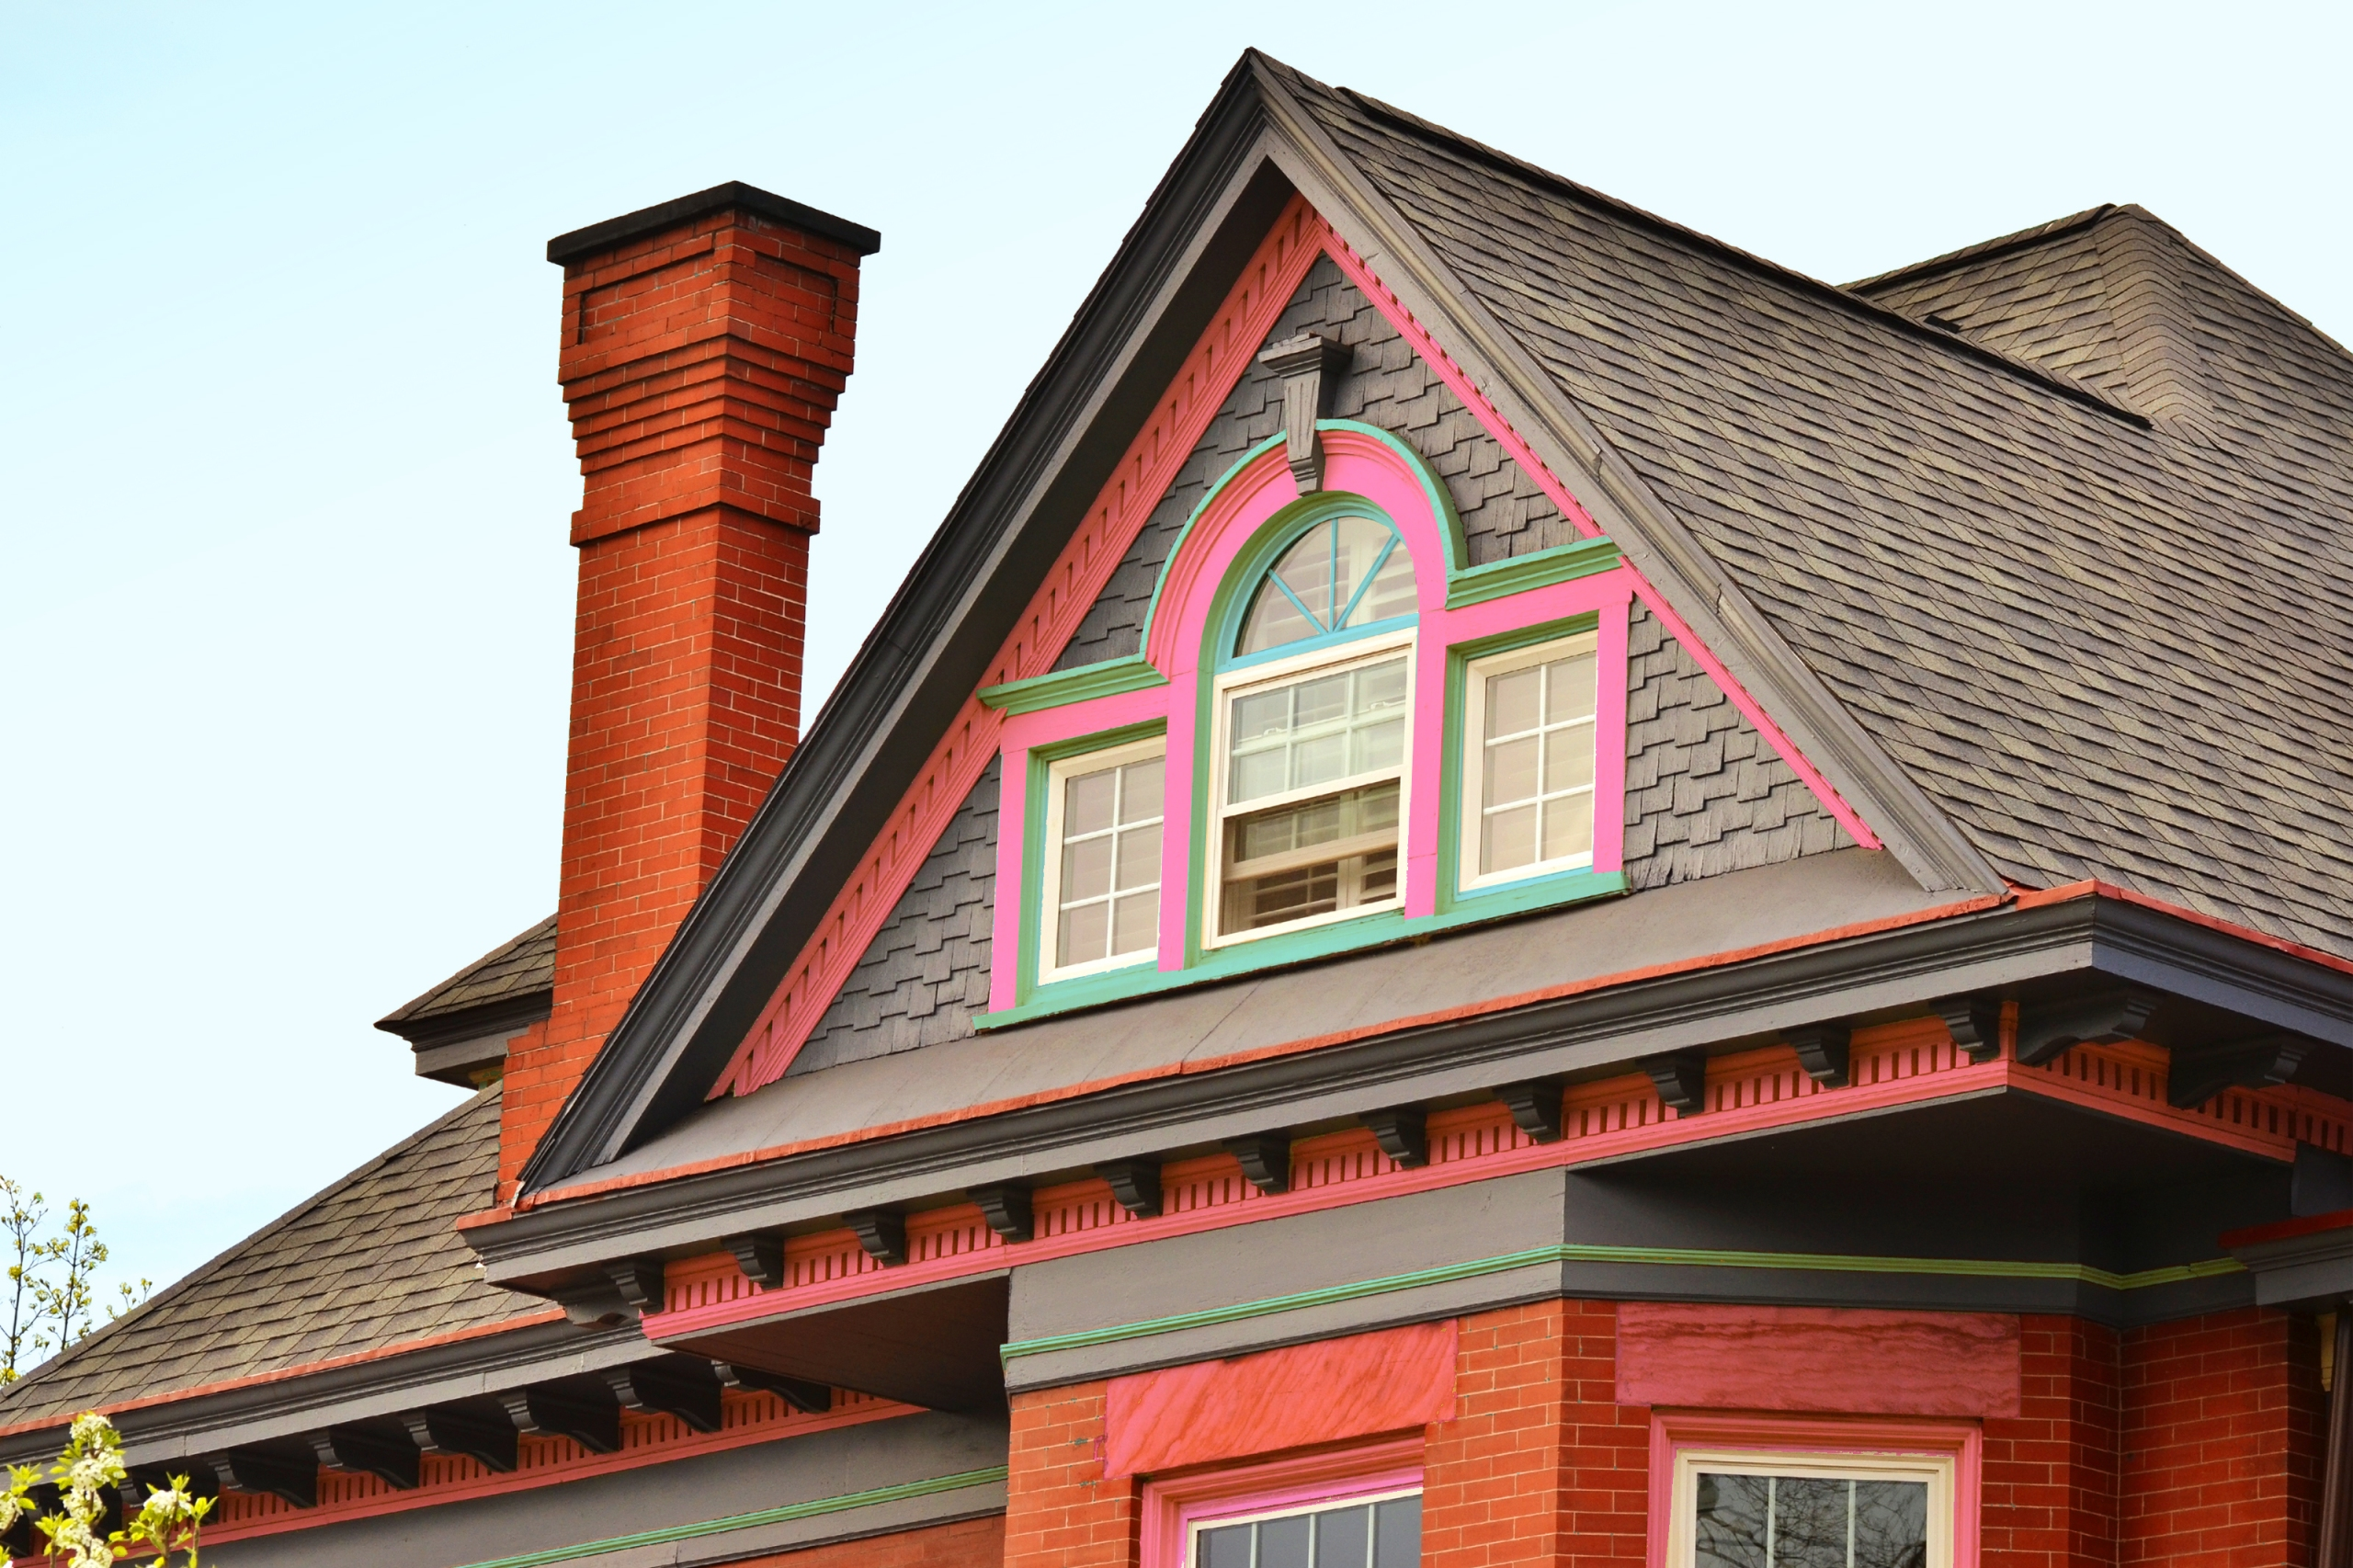 Brand new roof on house with pink and green detailing